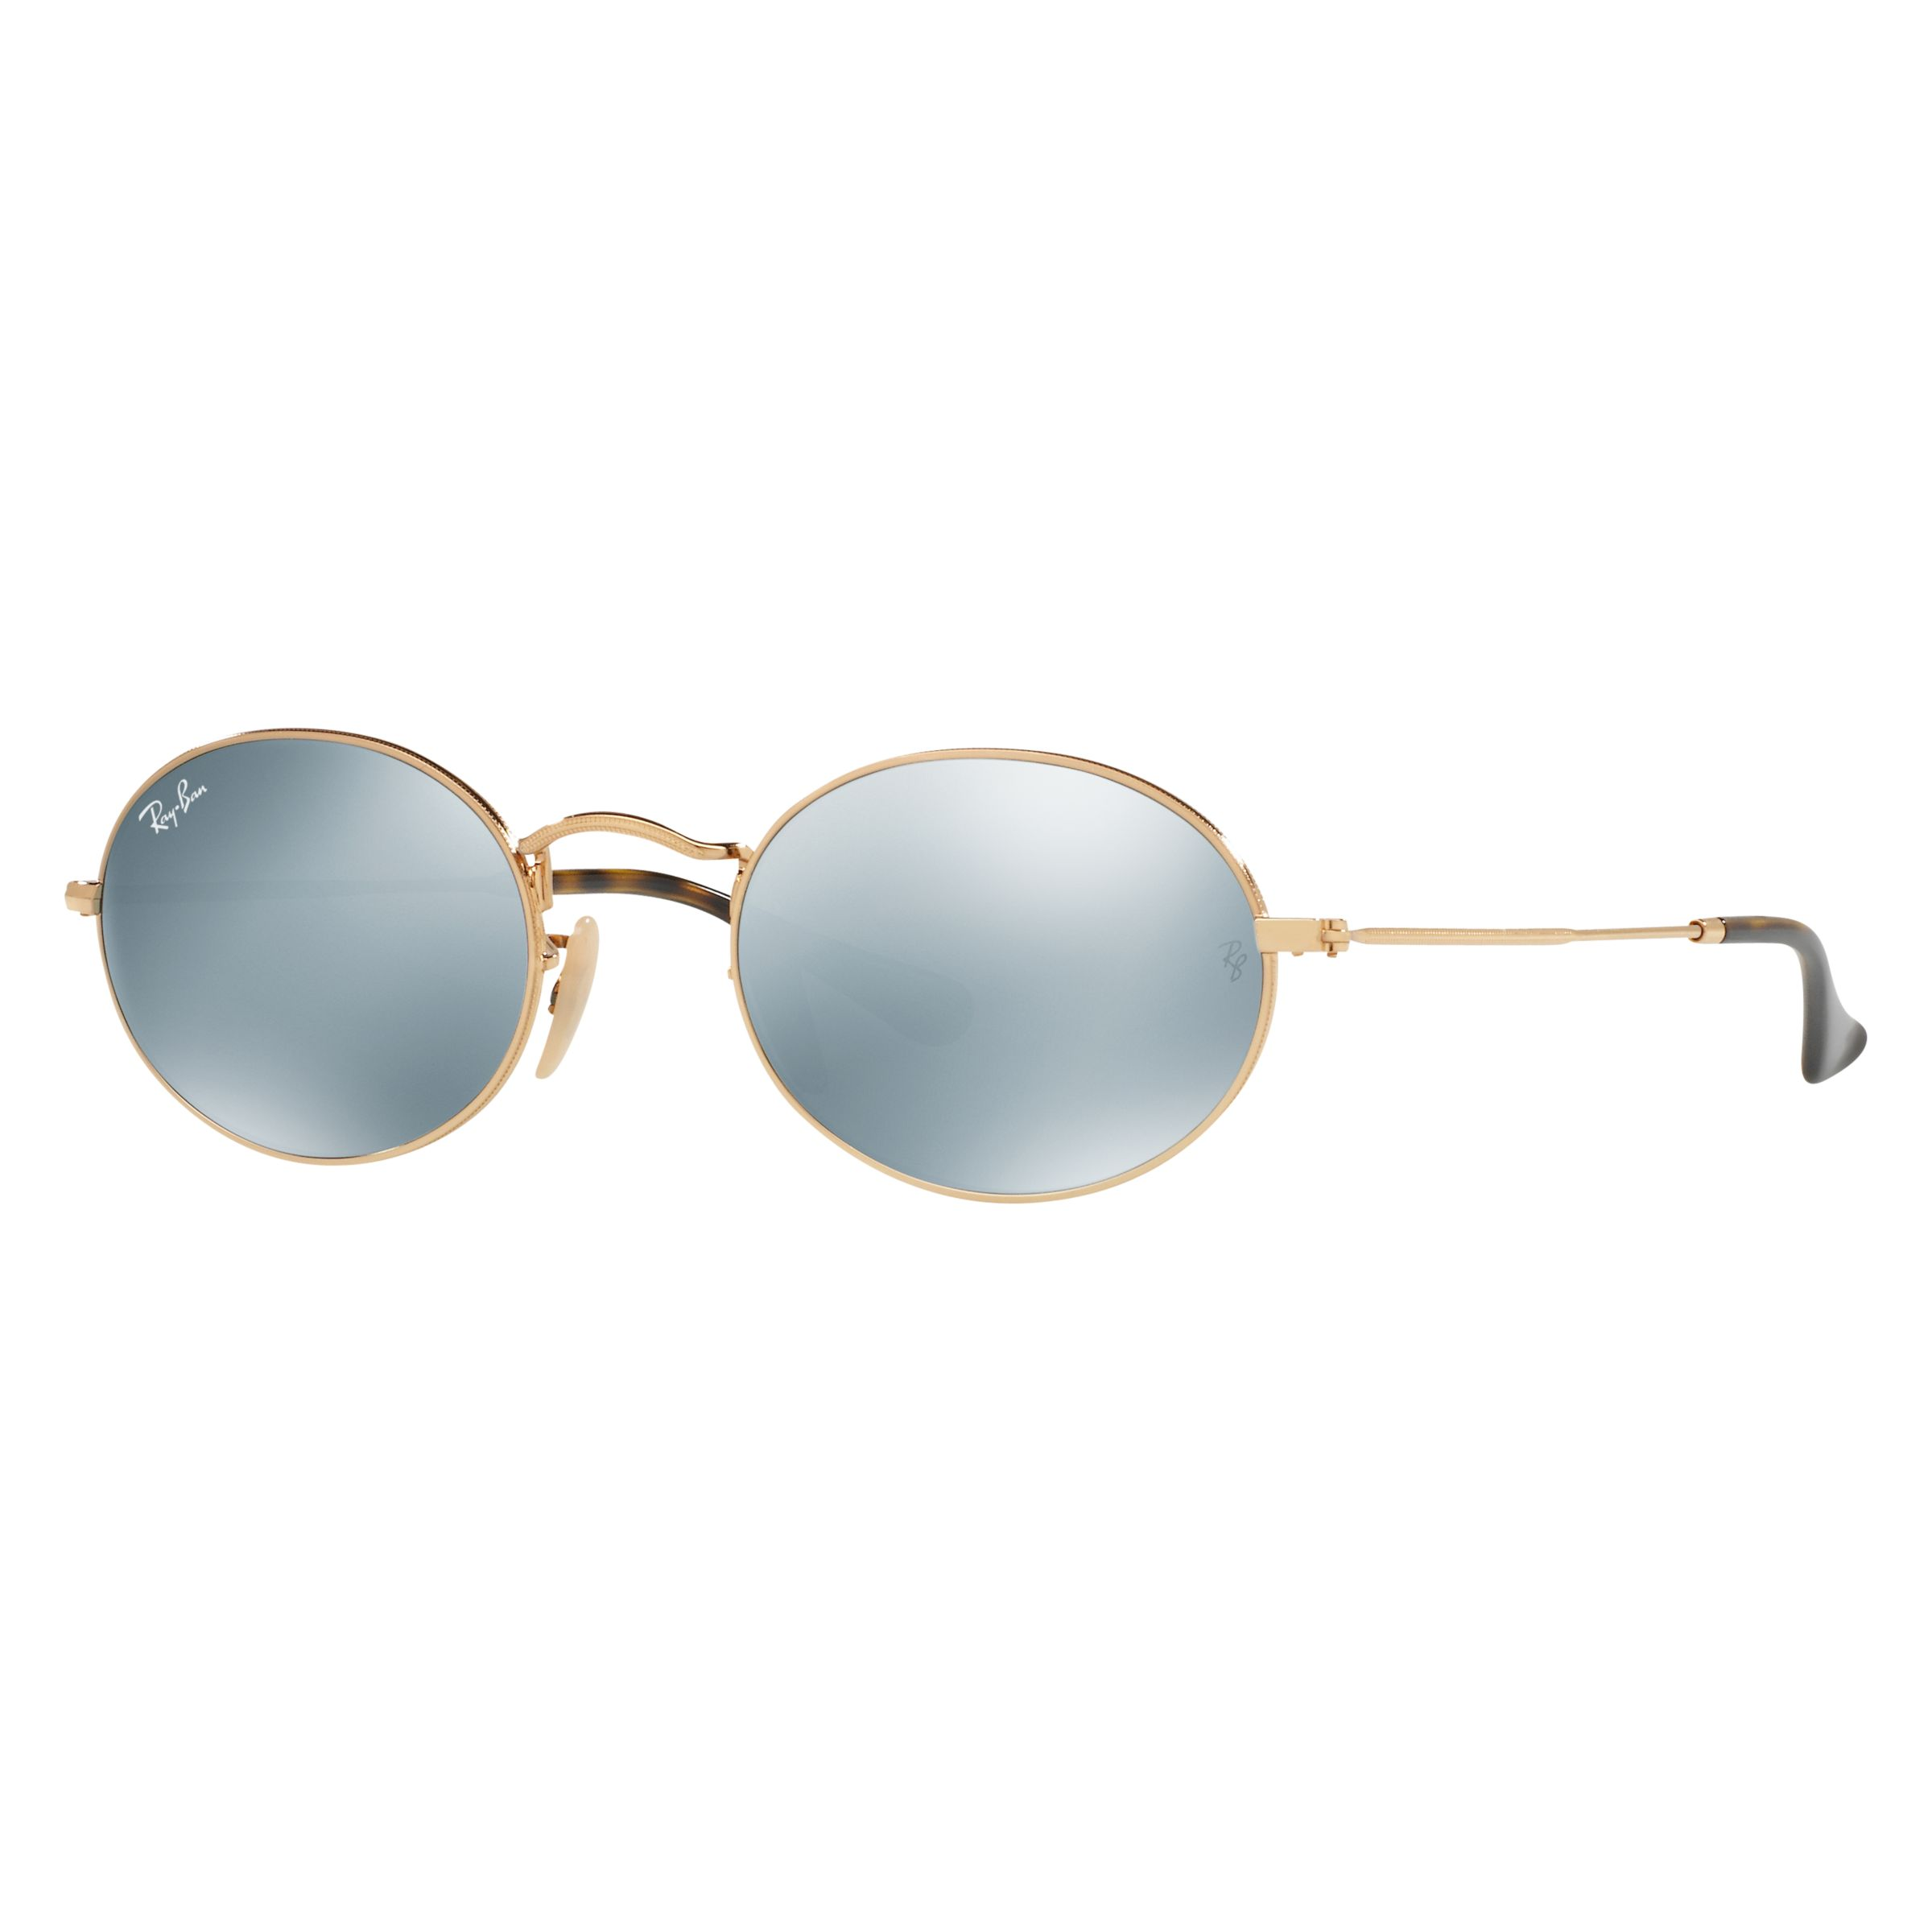 15db9d1198 Ray-Ban RB3547 Oval Flat Lens Sunglasses at John Lewis   Partners